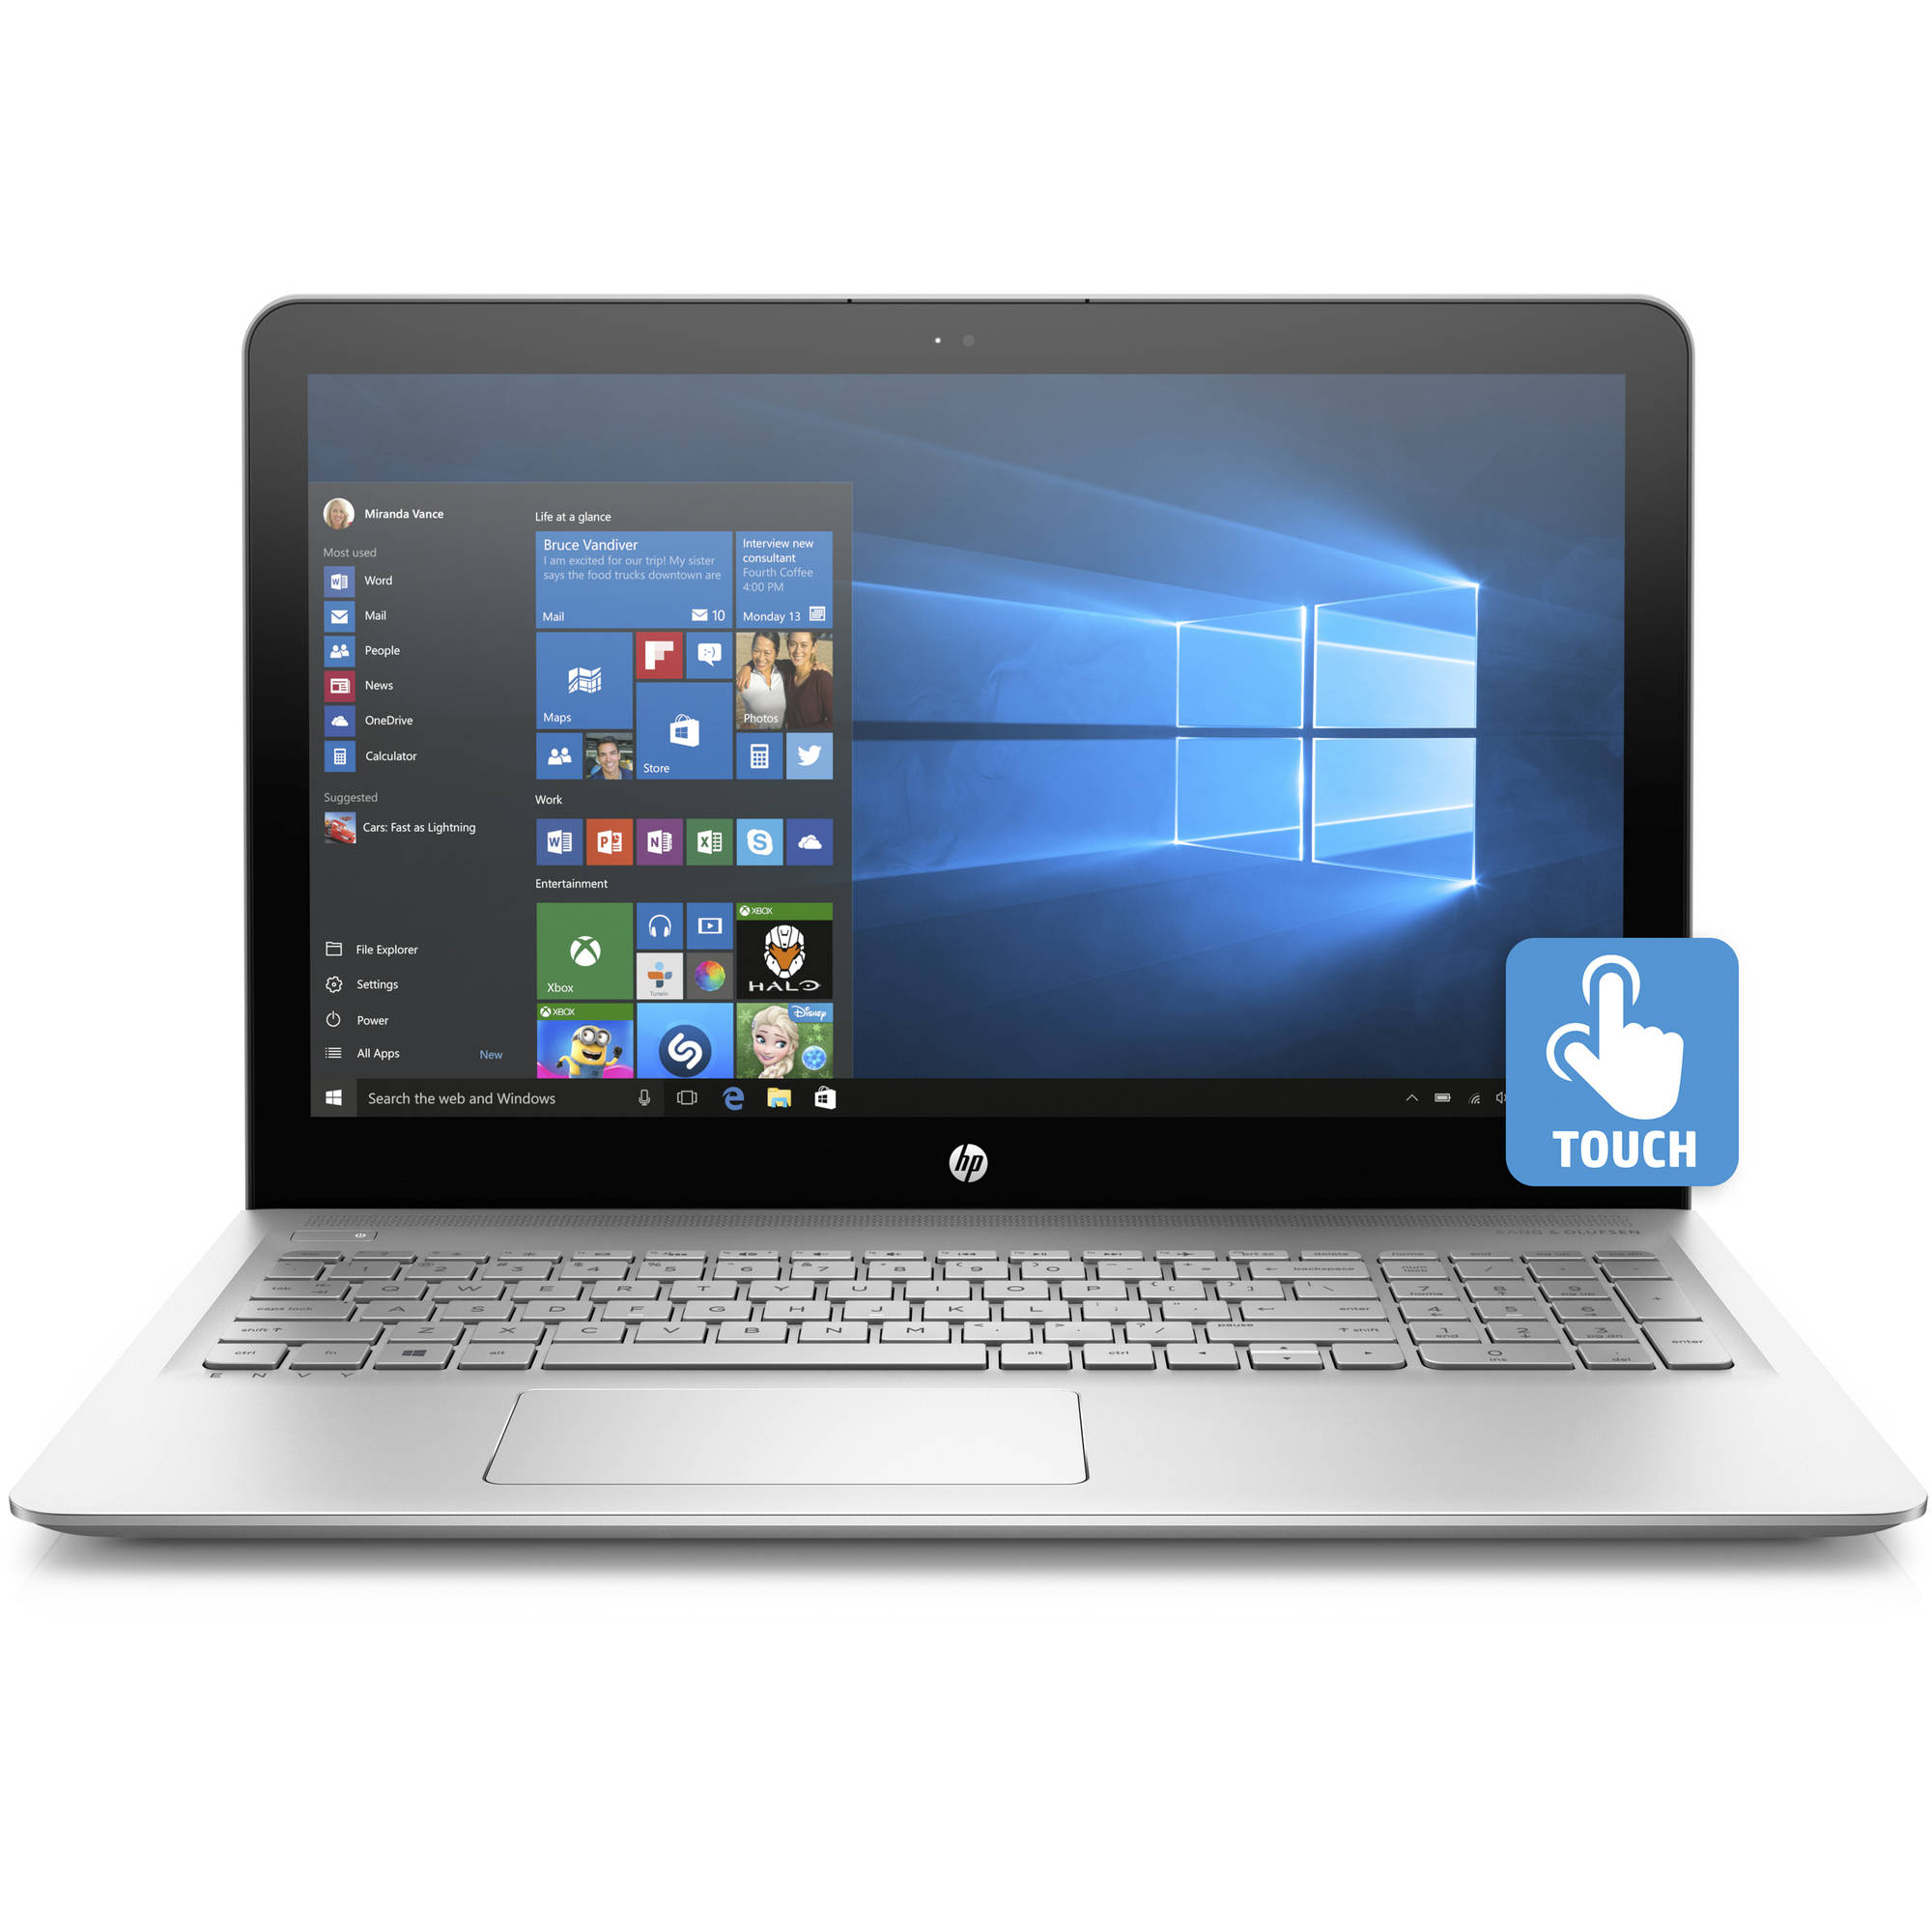 "Refurbished HP Envy 15-as014wm 15.6"" Laptop, Touchscreen, Windows 10 Home, Intel Core i7-6500U Processor, 8GB RAM, 1TB Hard Drive"